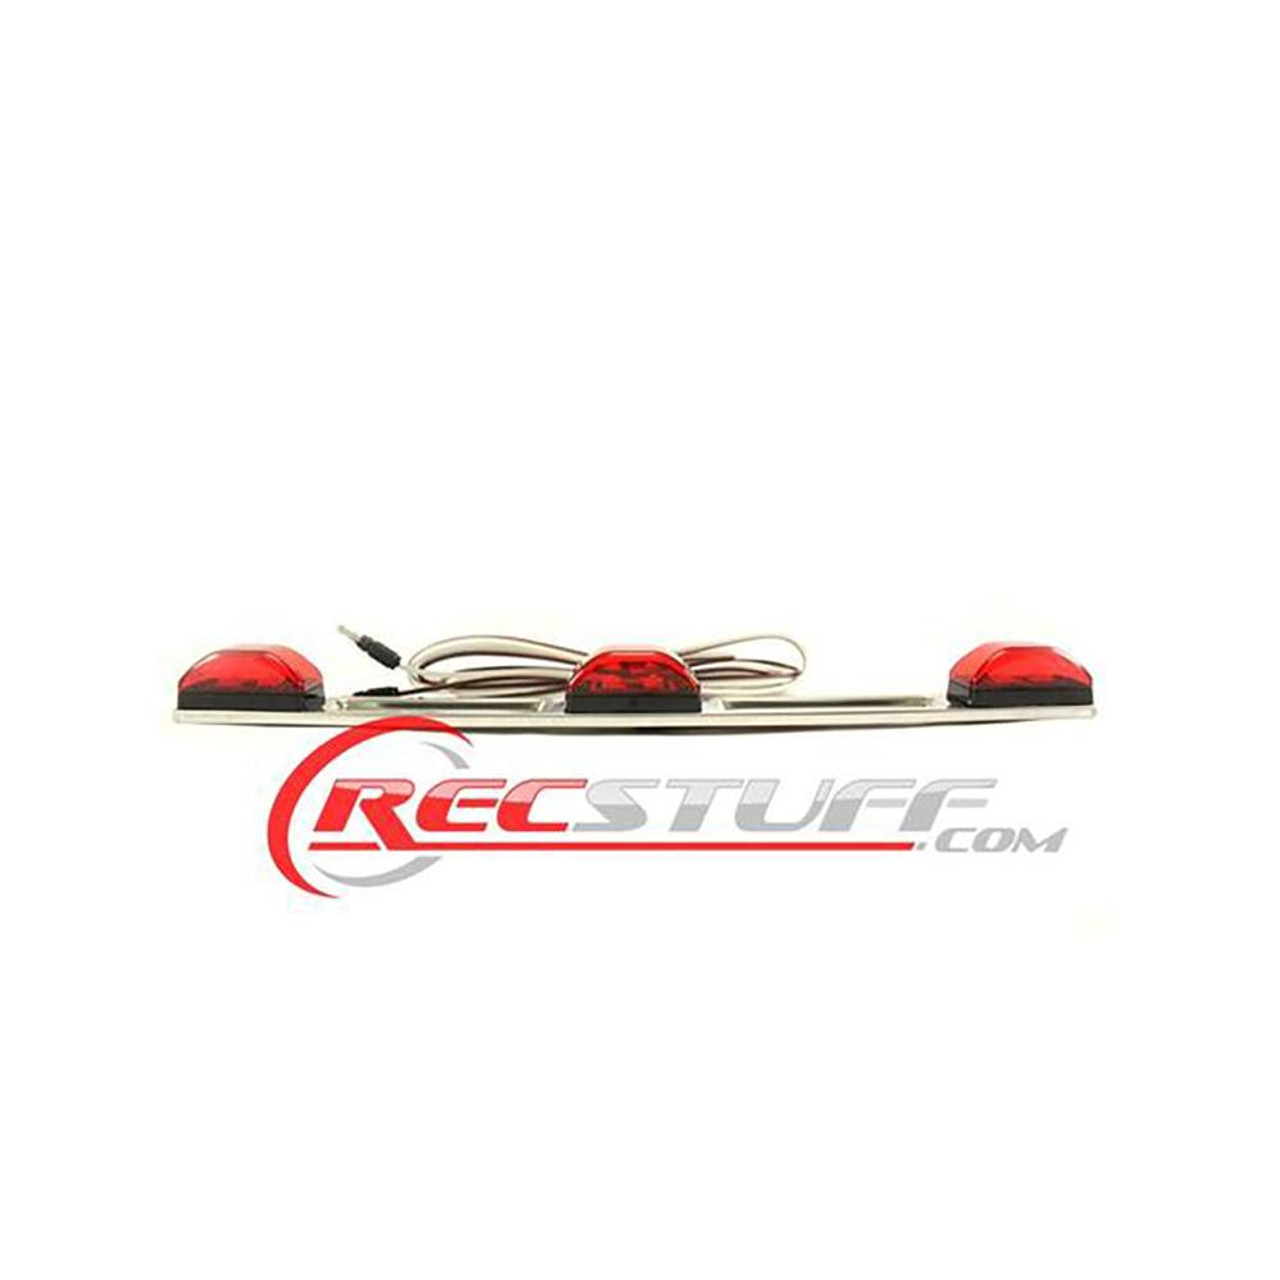 """Stainless Steel I.D LED Light Bar With 74"""" Lead and Plug - Trailer Tail Light"""